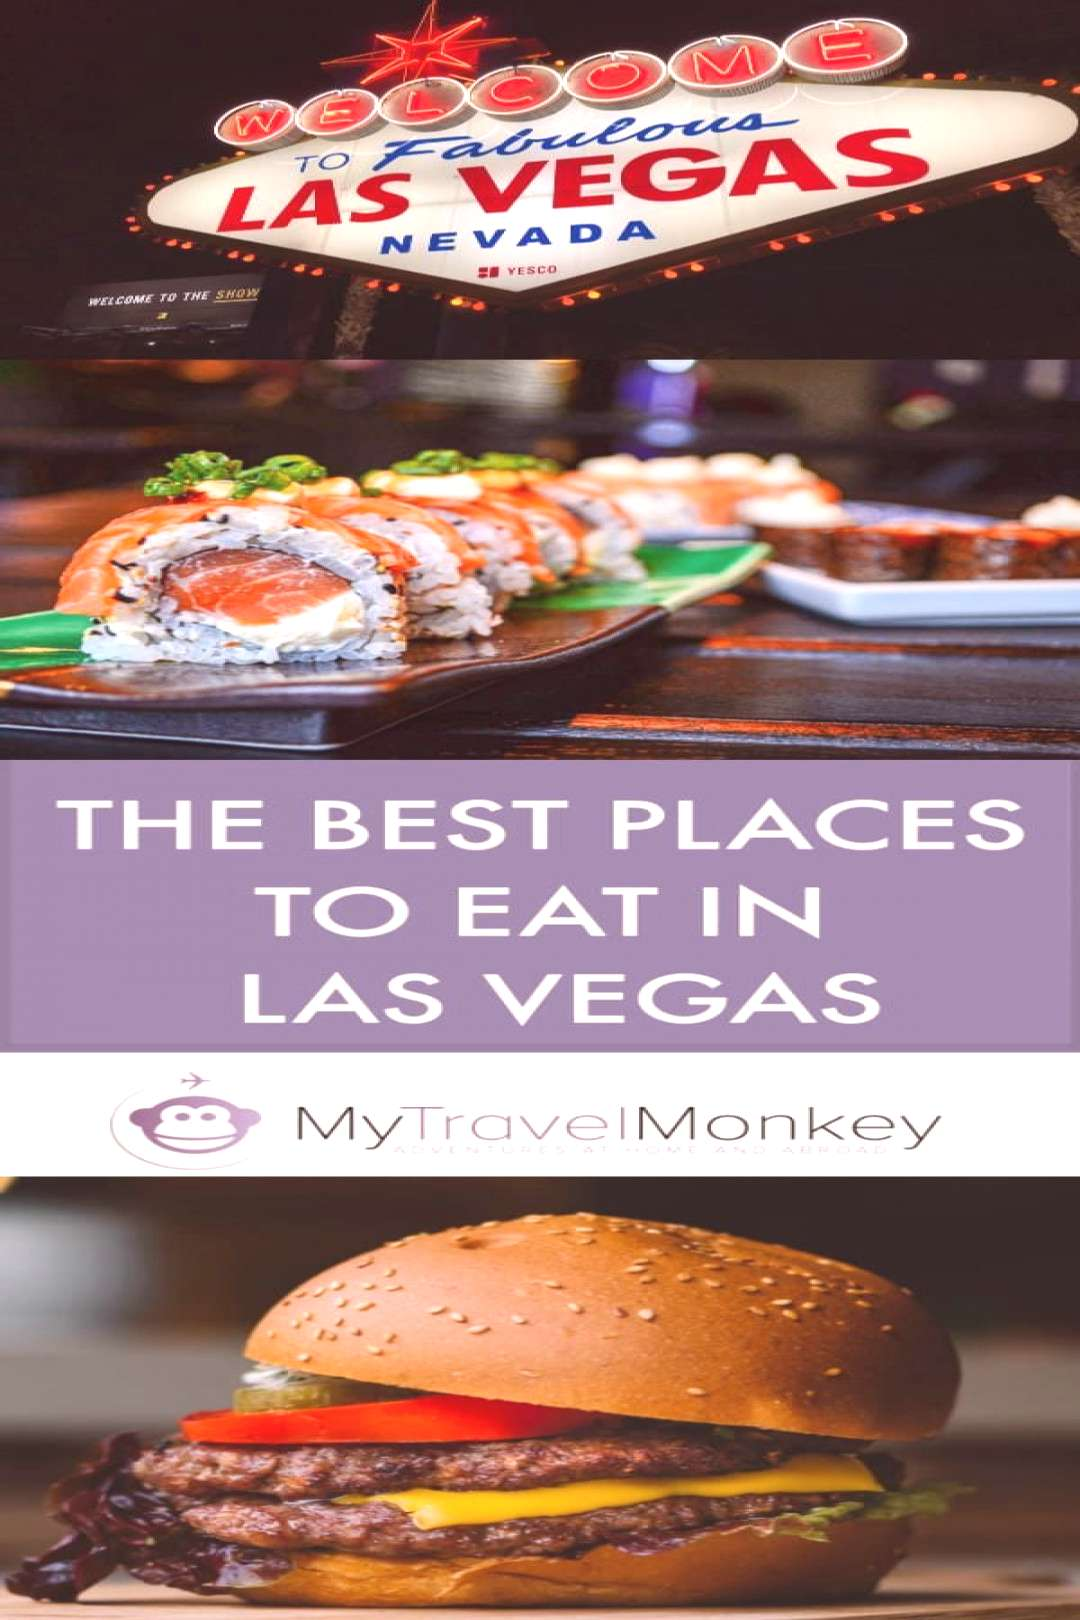 The Best Places To Eat and Drink in Las Vegas Looking for the best places to eat and drink in Las V